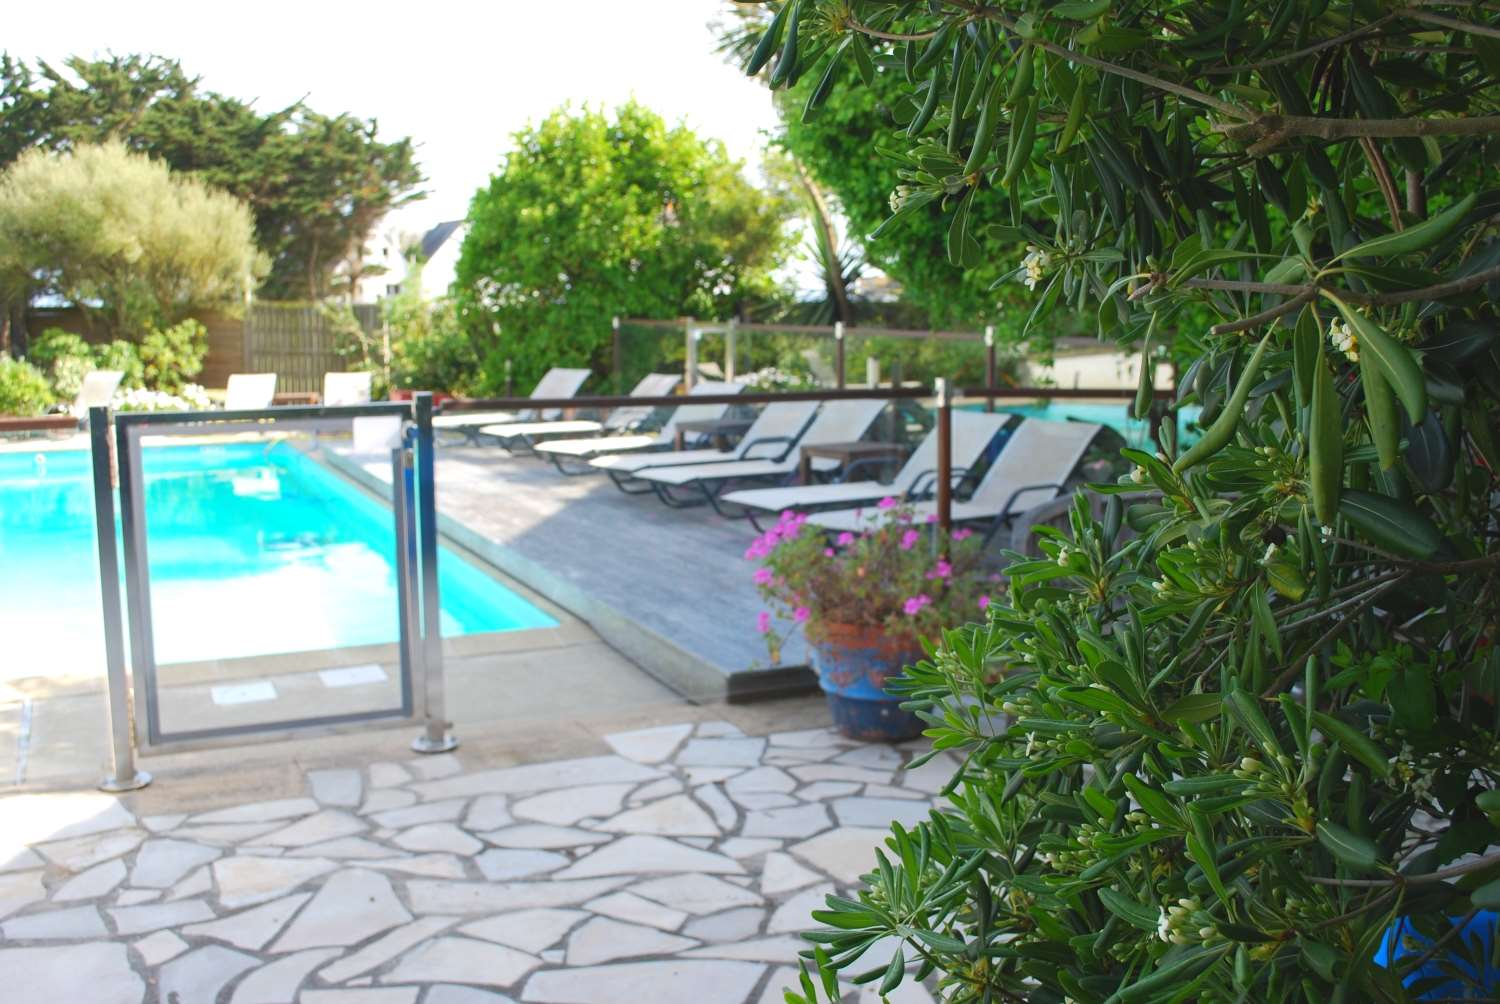 Hotel restaurant bellevue site officiel 3 toiles for Camping belle ile en mer avec piscine